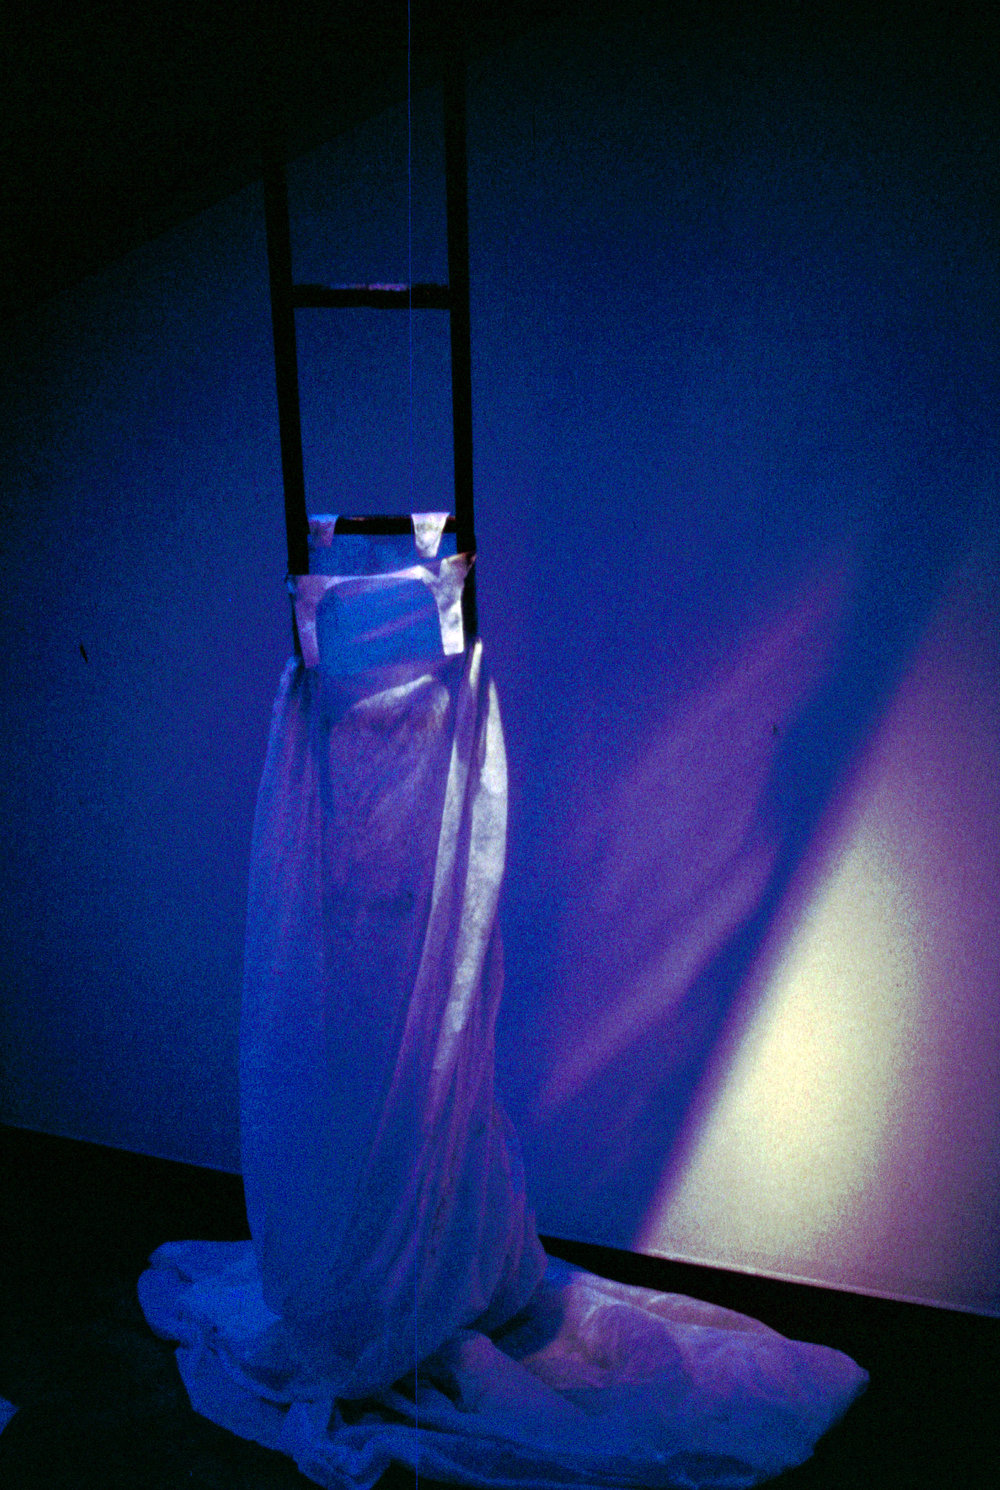 Disembodied   installation, Hewlett Gallery, Pittsburgh, PA  1996  Five 14' - 22' ladders and dresses, charred and in various states of collapse, ashes, sound piece